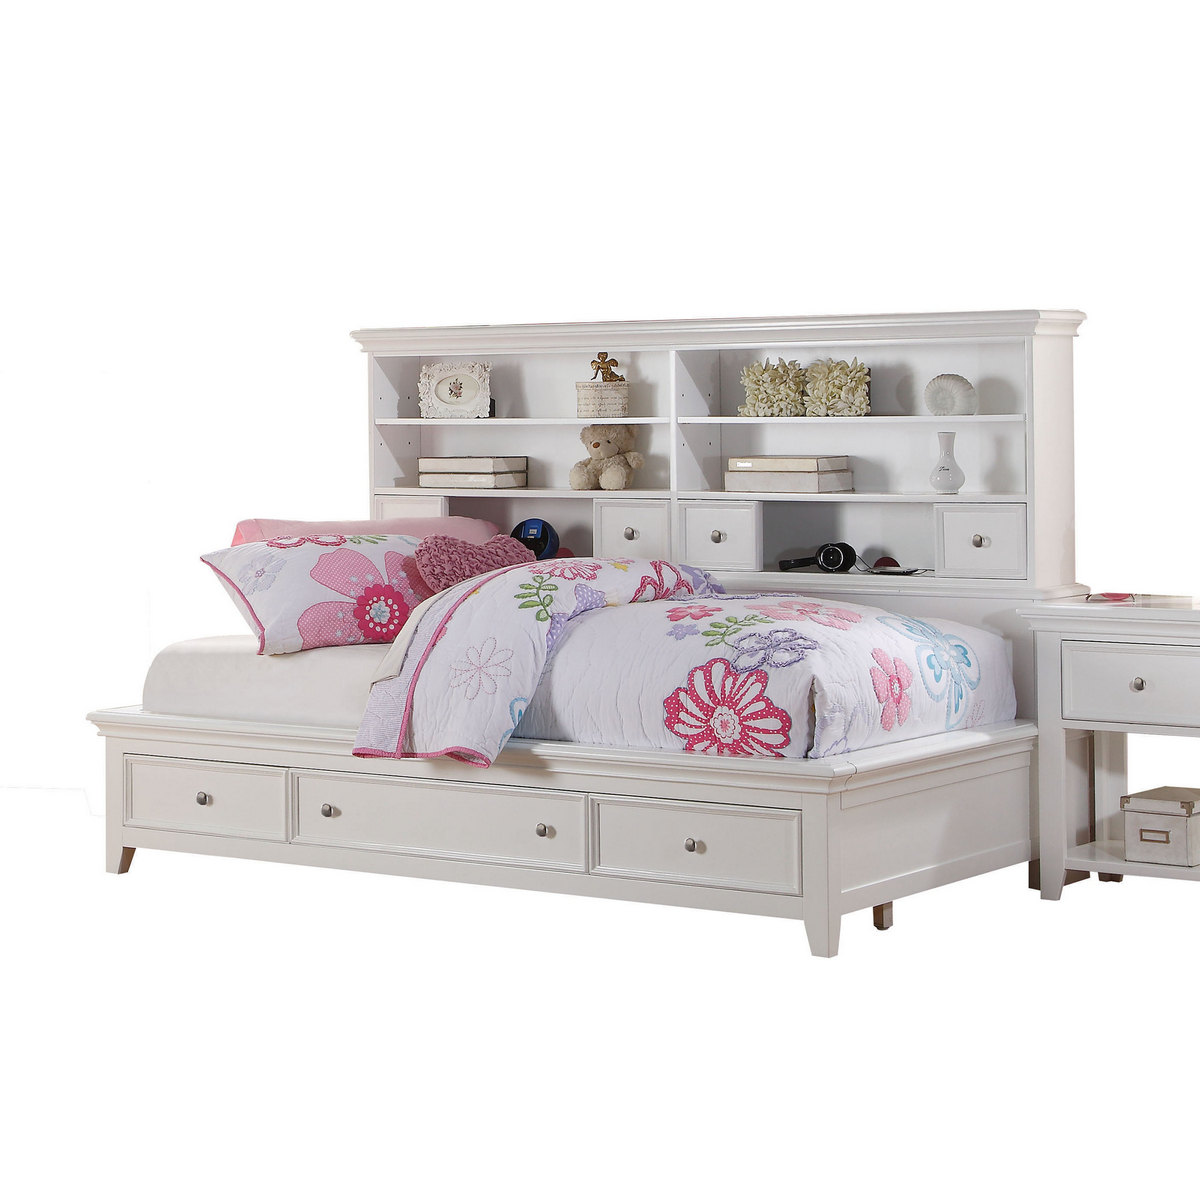 Acme Daybed Storage Full White